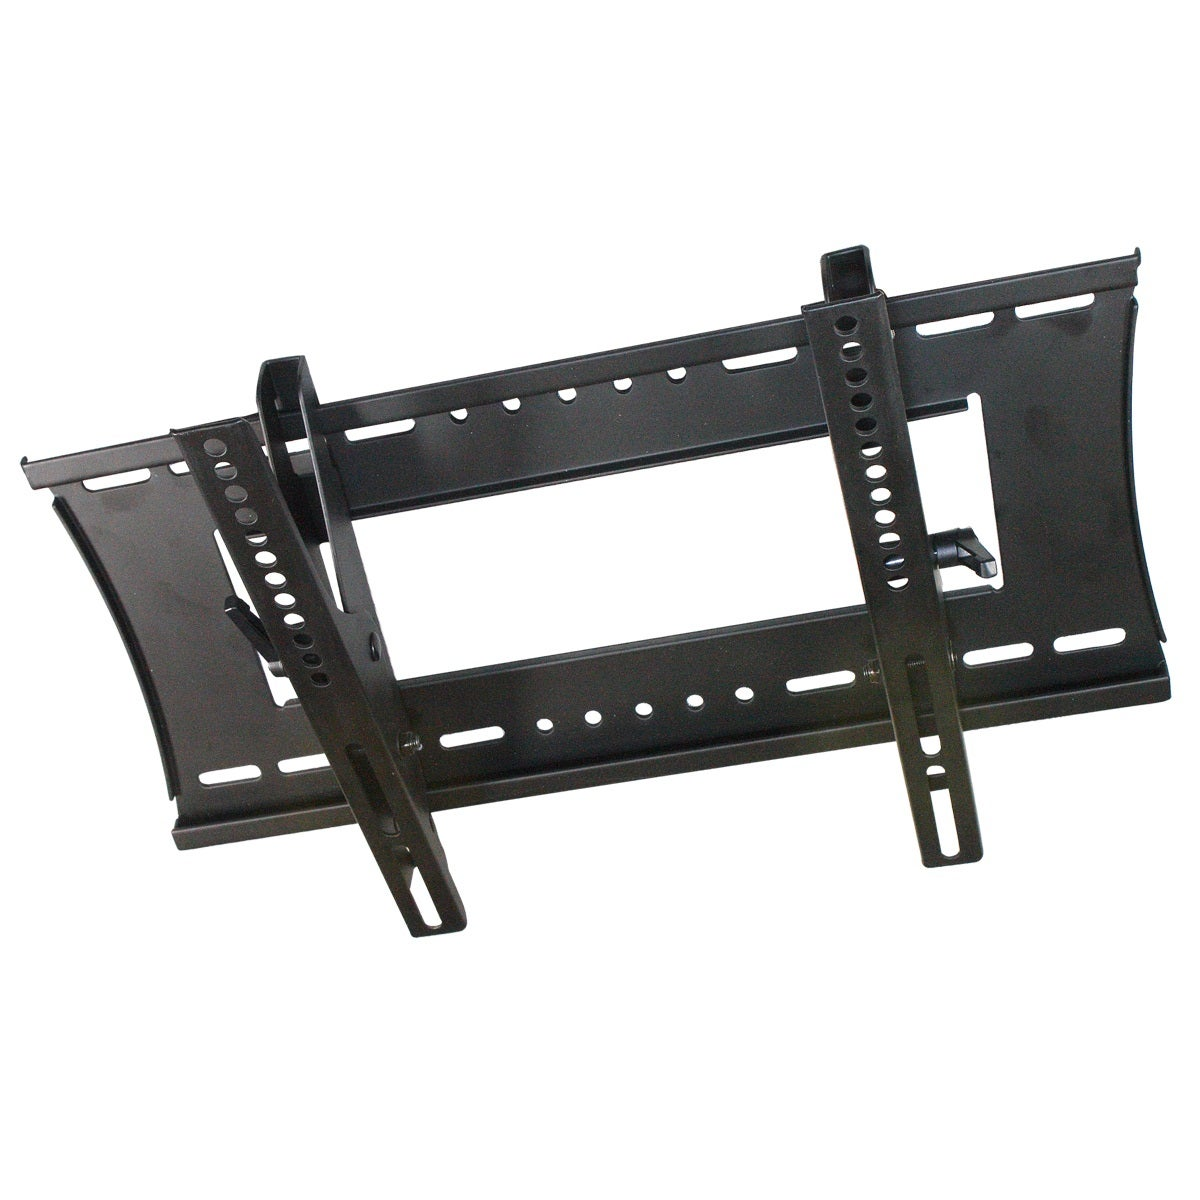 Mustang MV-TILT2B Flat Panel TILT 23 to 40-inch Wall Mount